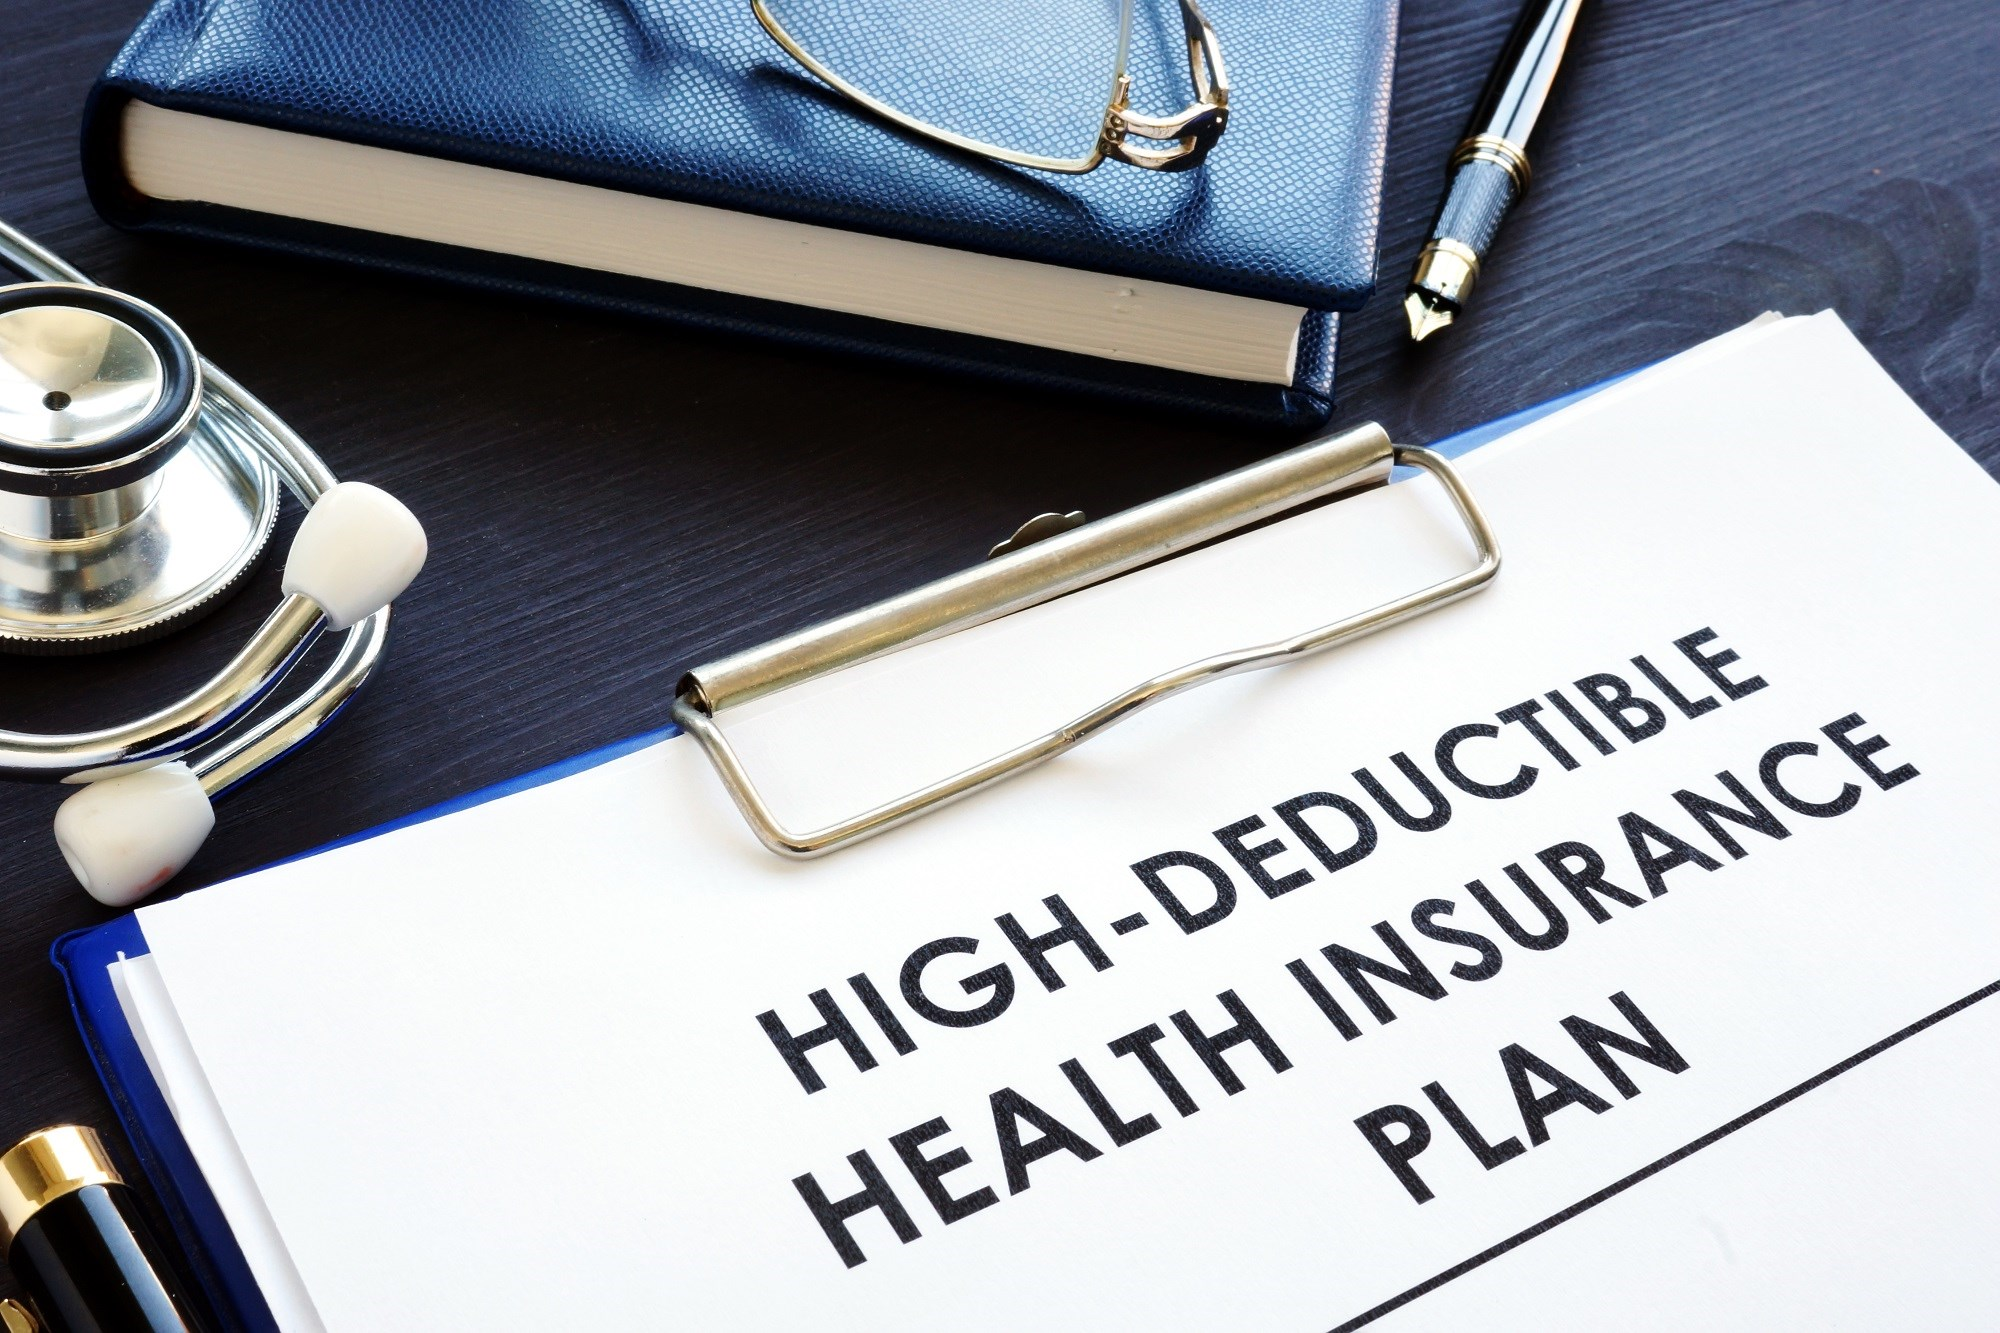 Enrollment in high-deductible health plans has increased among adults with employment-based insurance coverage.